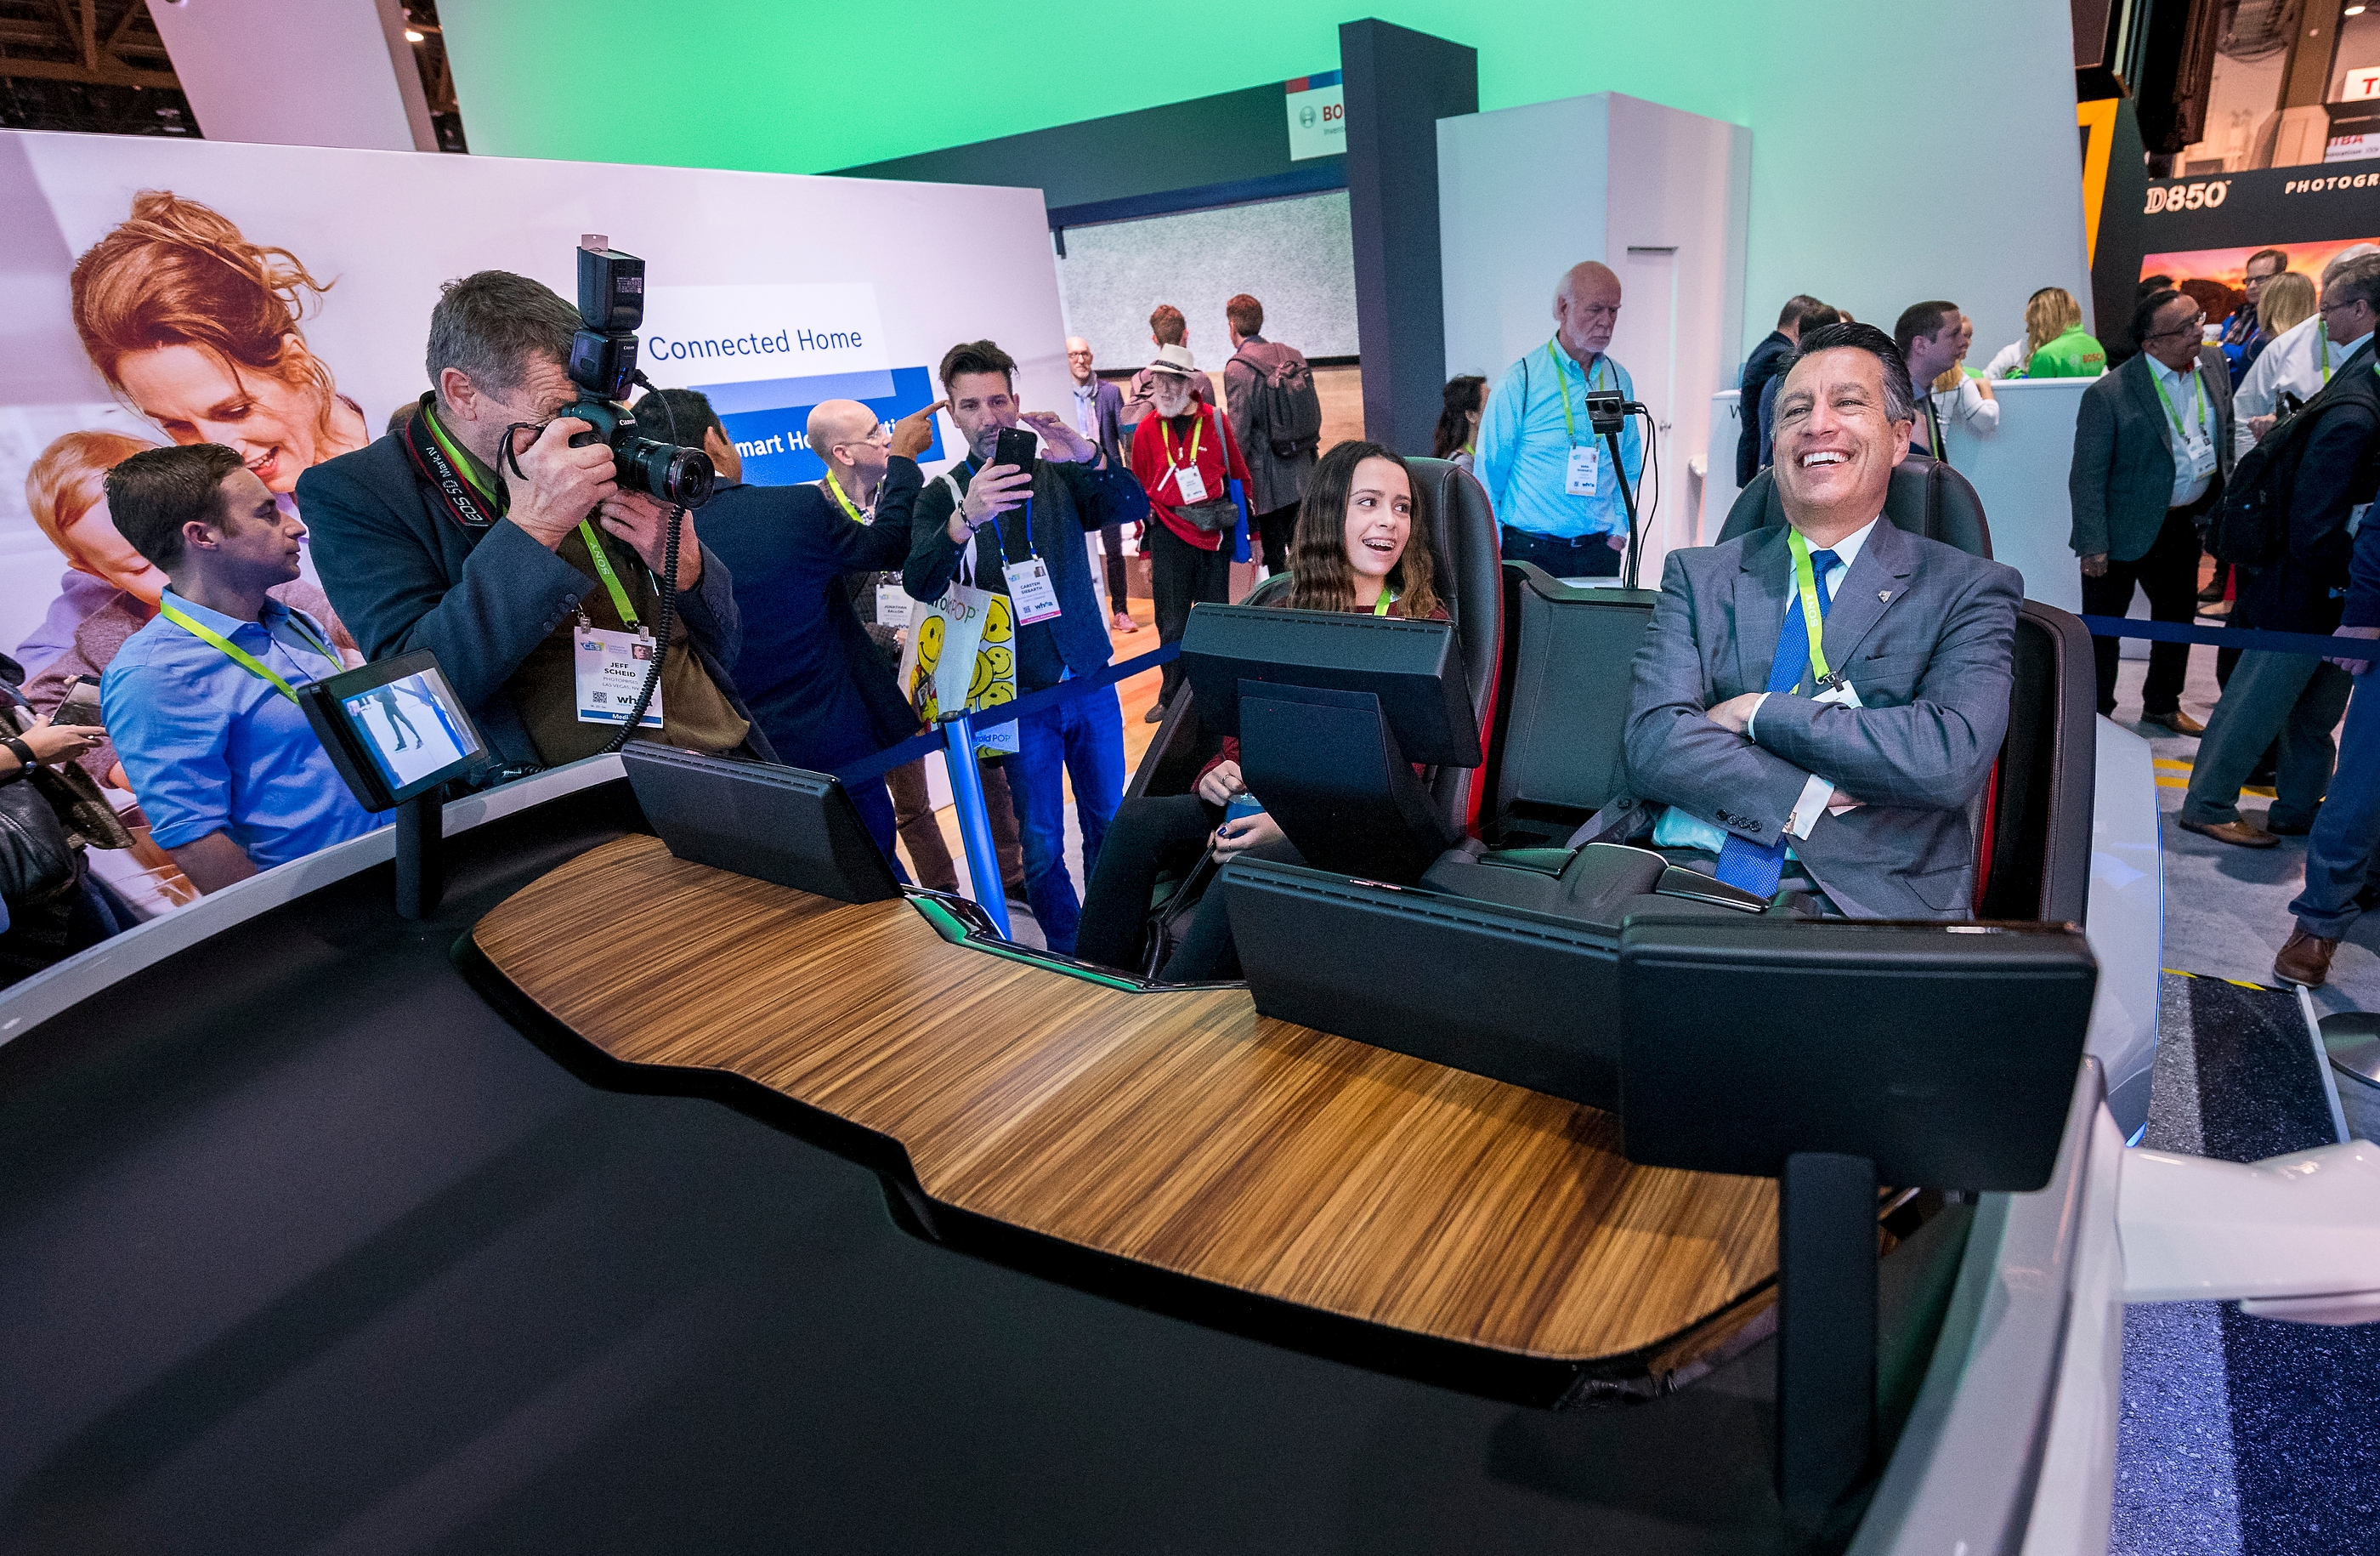 "Nevada Governor Brian Sandoval, right, ""relaxes"" behind the wheel of an autonomous car demonstration as his daughter Marisa Sandoval looks on from the passenger seat during a tour of the Bosch booth at CES in the Las Vegas Convention Center on Thursday, Jan. 11, 2018. CREDIT: Mark Damon/Las Vegas News Bureau"